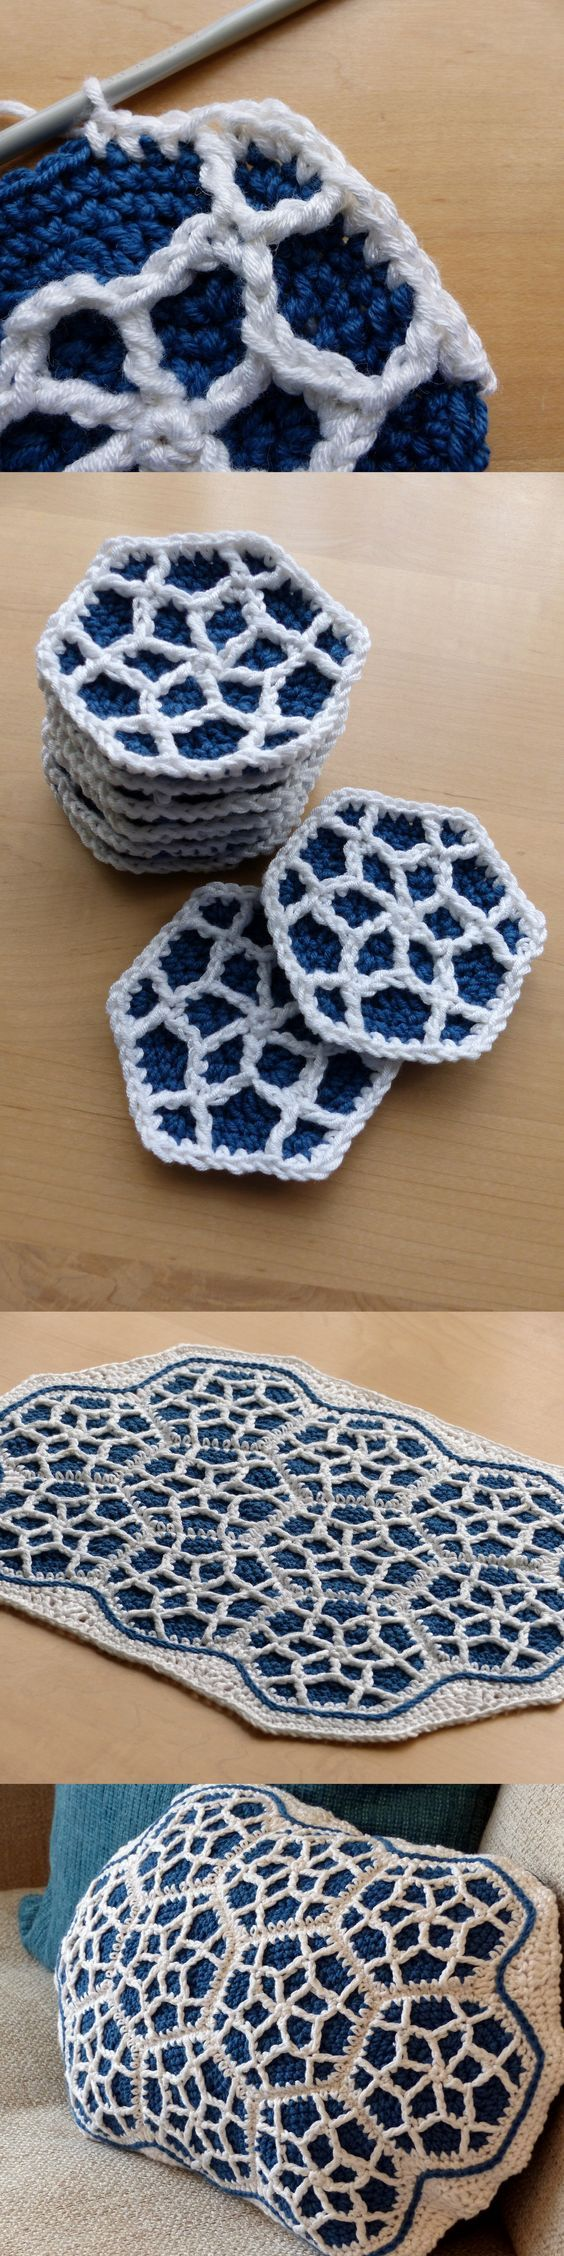 Moroccan Hexagon Motif – Free Crochet Pattern by Make My Day Creative – use this to make a cushion or blanket or sc